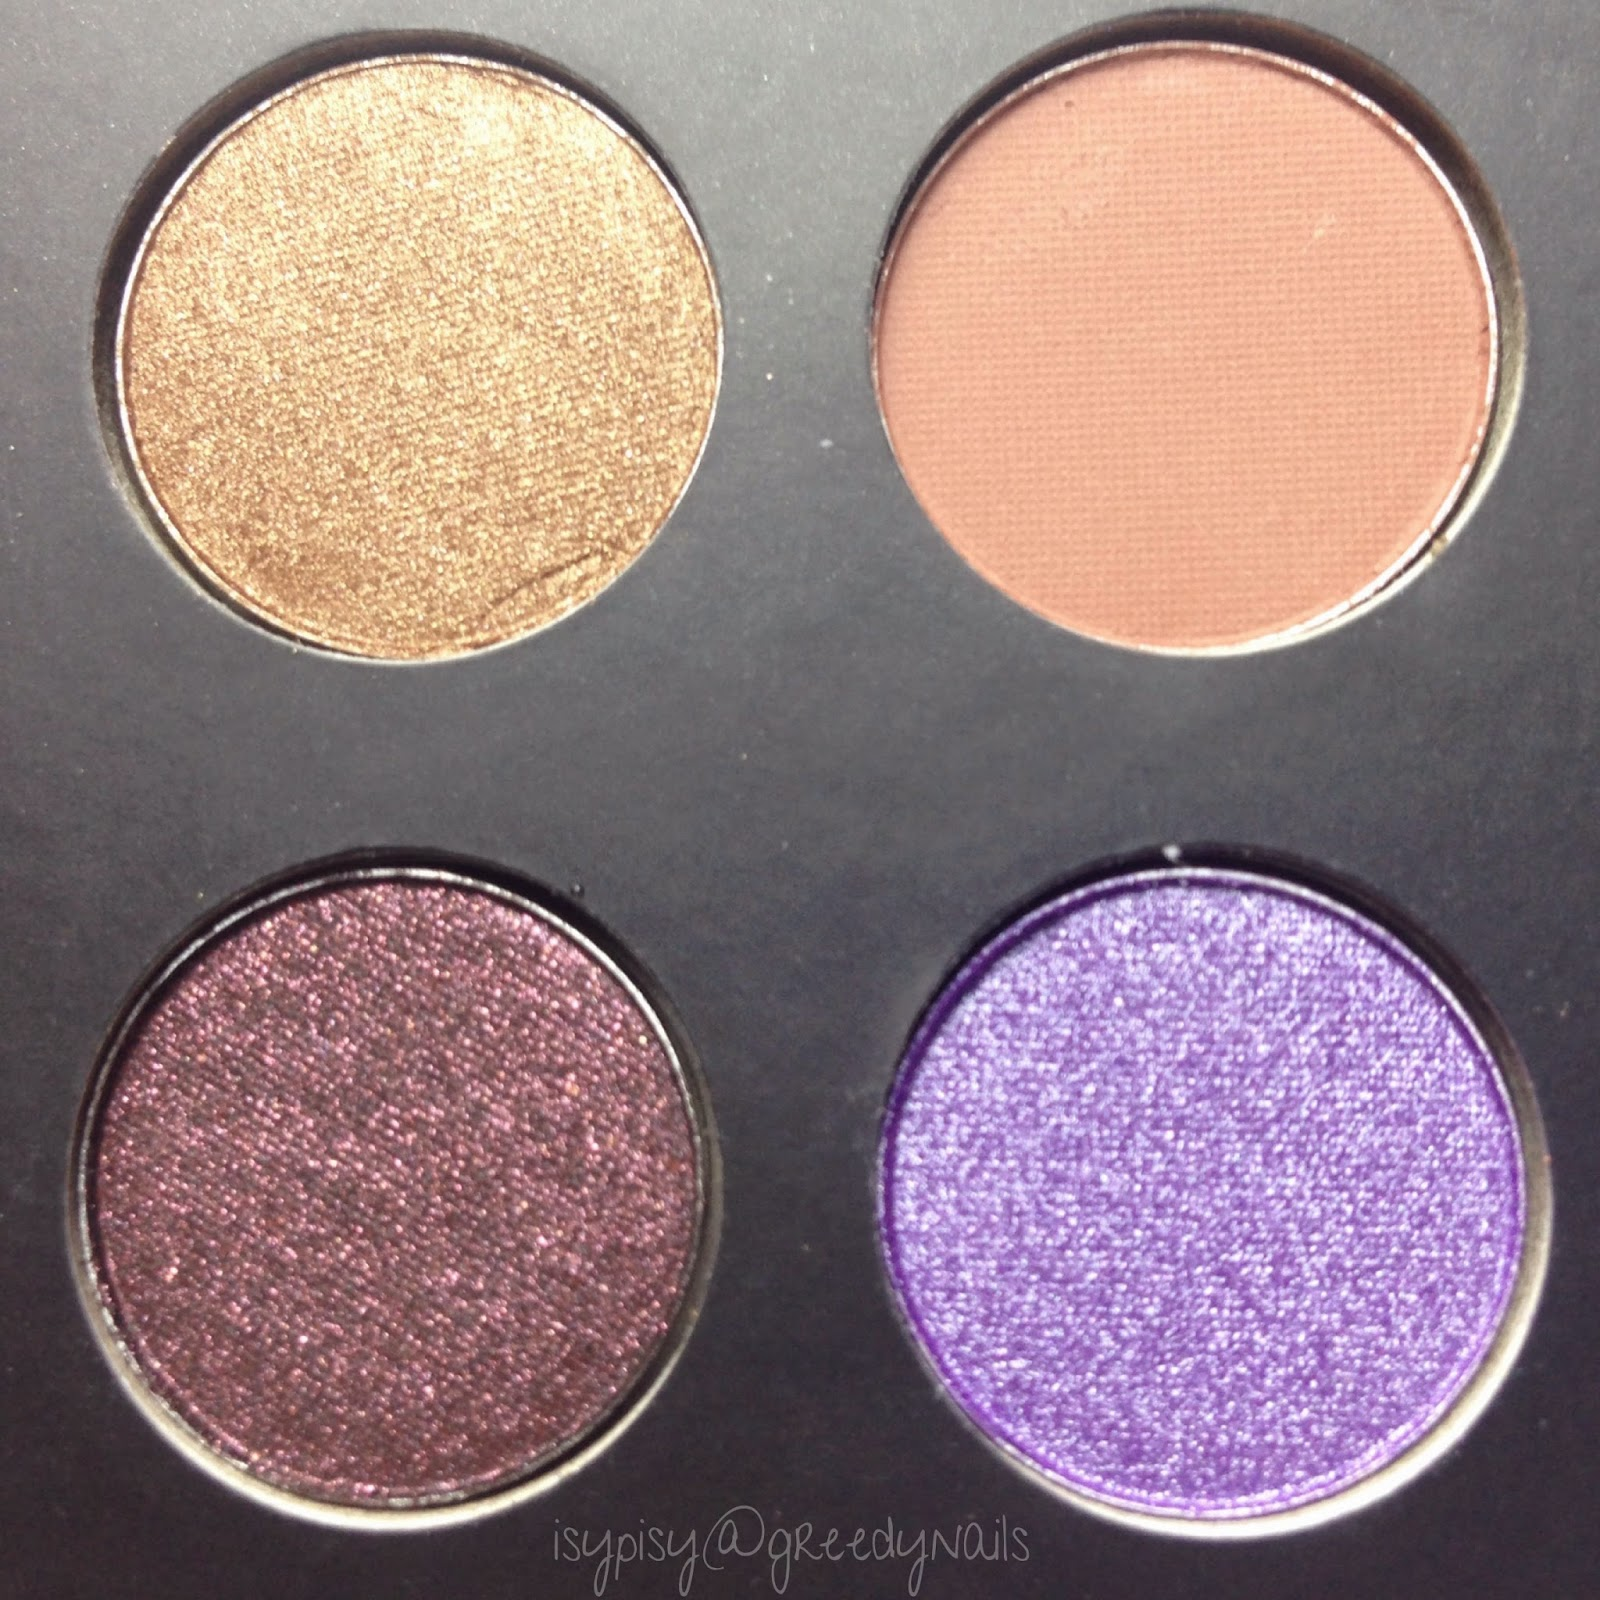 Greedy nails: it`s judy time palette (bh cosmetics)   swatches   ...